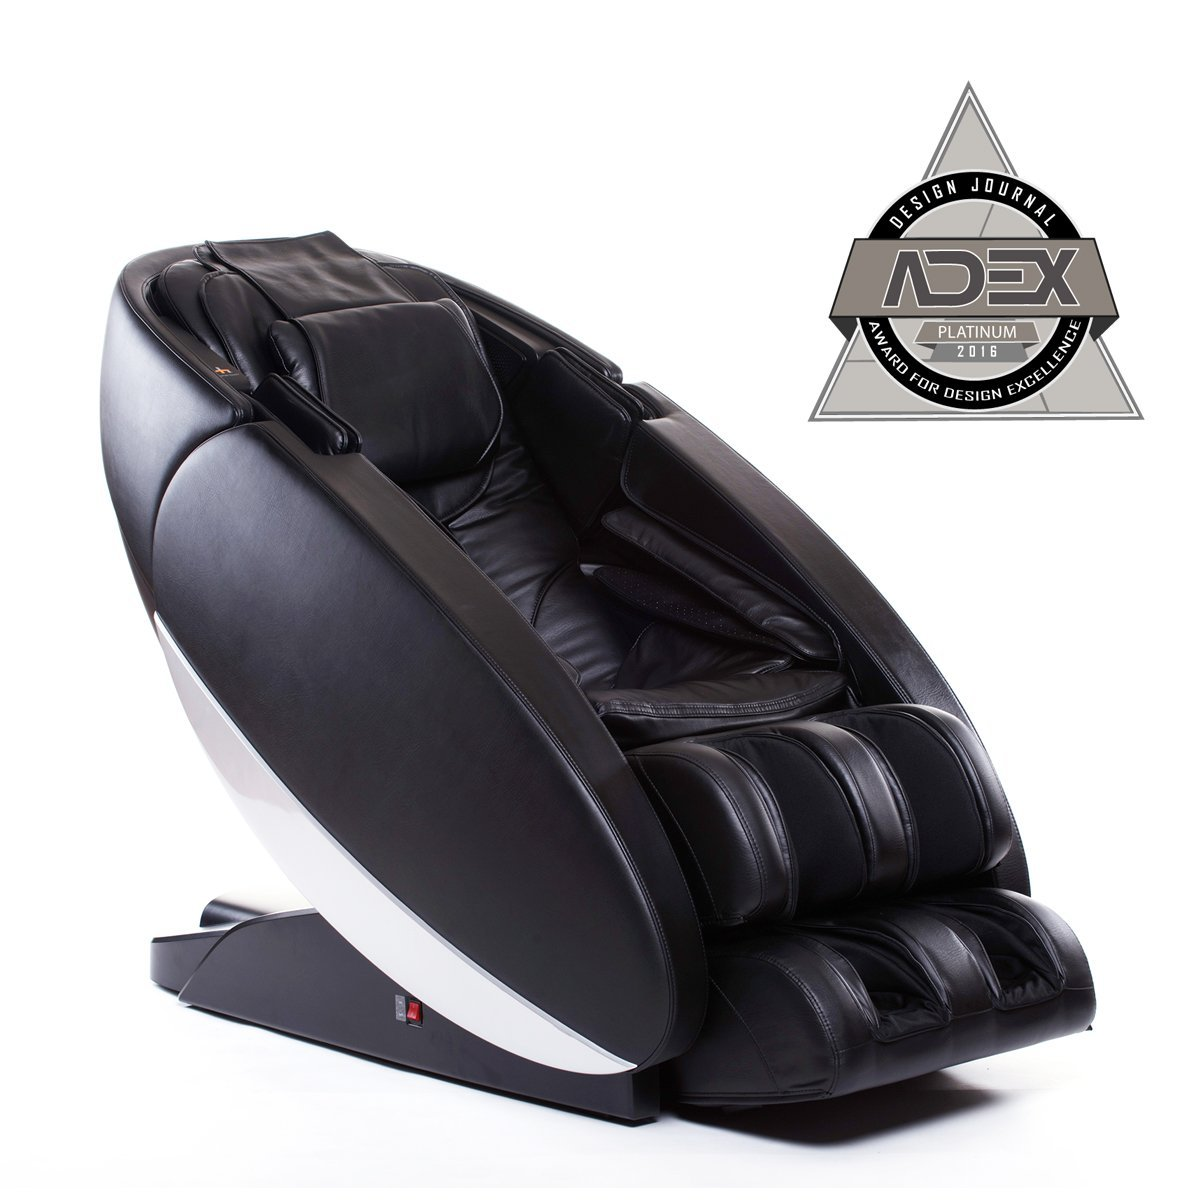 human touch chairs glider chair kijiji novo full body coverage zero gravity l track massage black walmart com